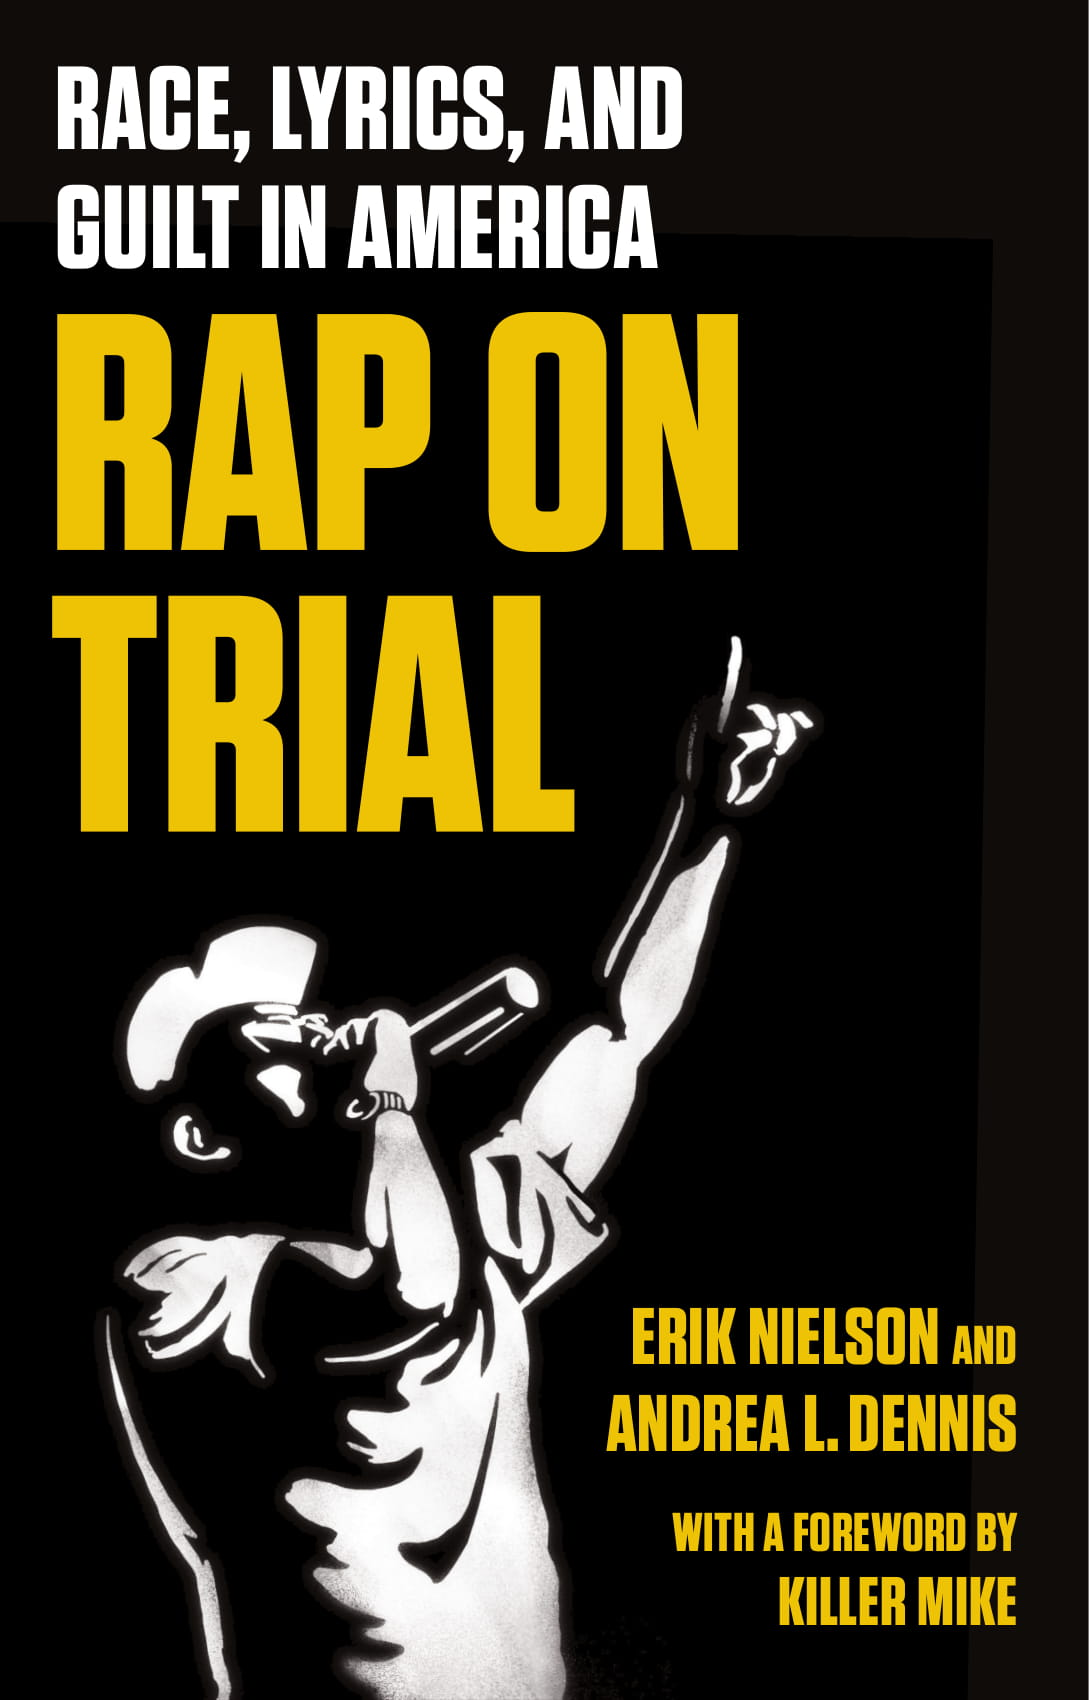 - Over the last three decades, as rap music's popularity has exploded, police and prosecutors saw an opportunity: they could present the sometimes violent, crime-laden lyrics of amateur rappers as confessions to crimes, threats of violence, or revelations of criminal motive—and judges and juries would go along with it. They've reopened cold cases, alleged gang activities, charged serious crimes, and secured convictions by presenting the lyrics and videos of rappers as autobiography. Now, an alarming number of aspiring rappers are imprisoned, some for life. Others face the death penalty. No other form of creative expression is treated this way in the courts.Rap on Trial places this disturbing practice in the context of hip hop history and exposes what's at stake in the criminal justice system.